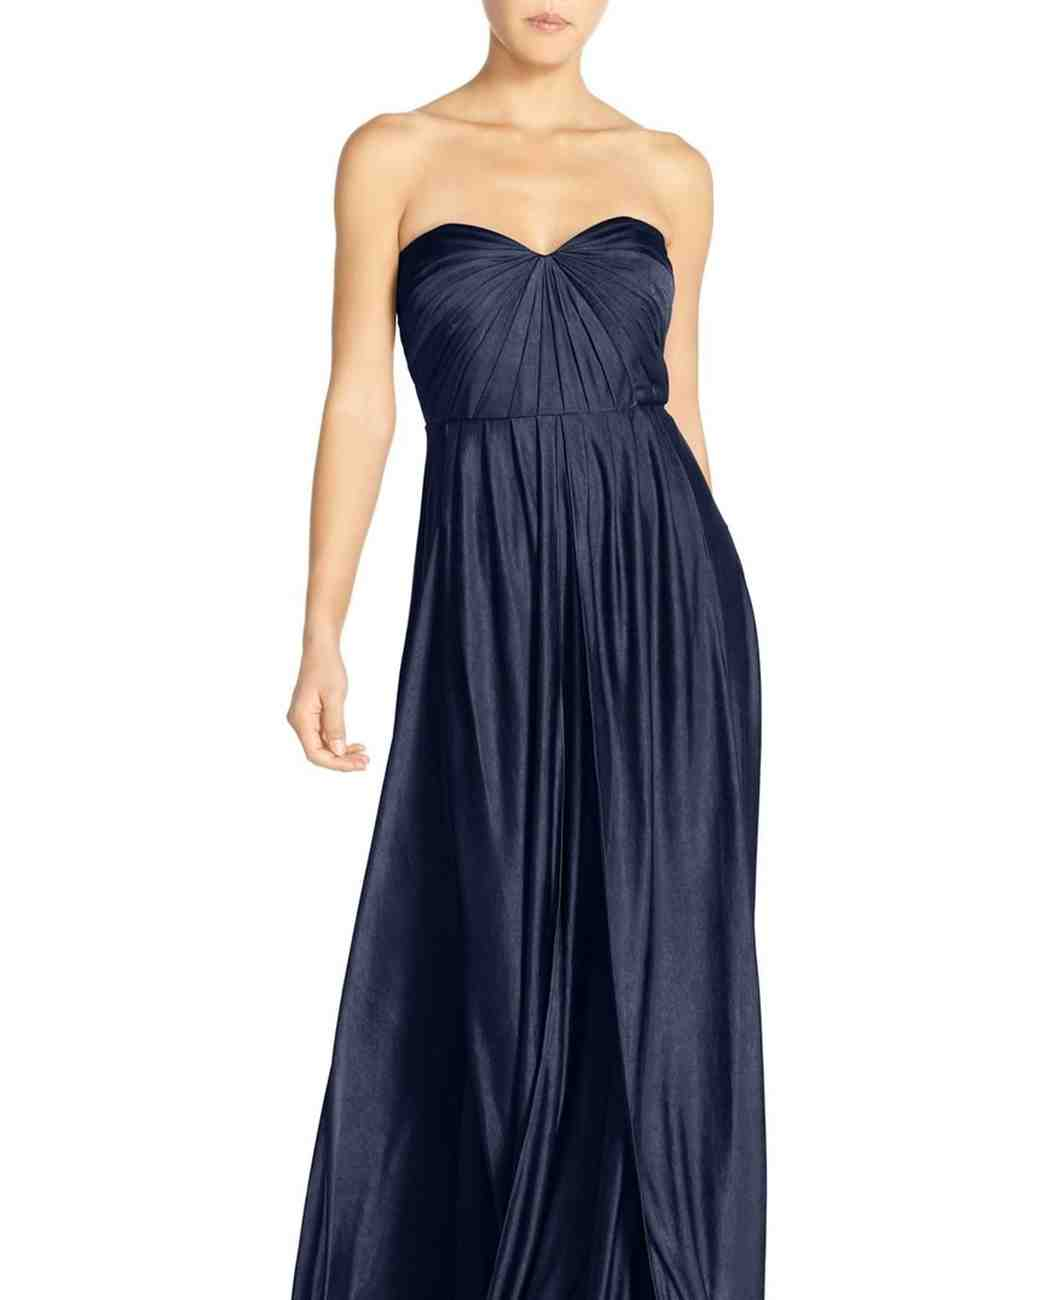 Navy blue bridesmaid dresses martha stewart weddings for Navy blue dresses for weddings